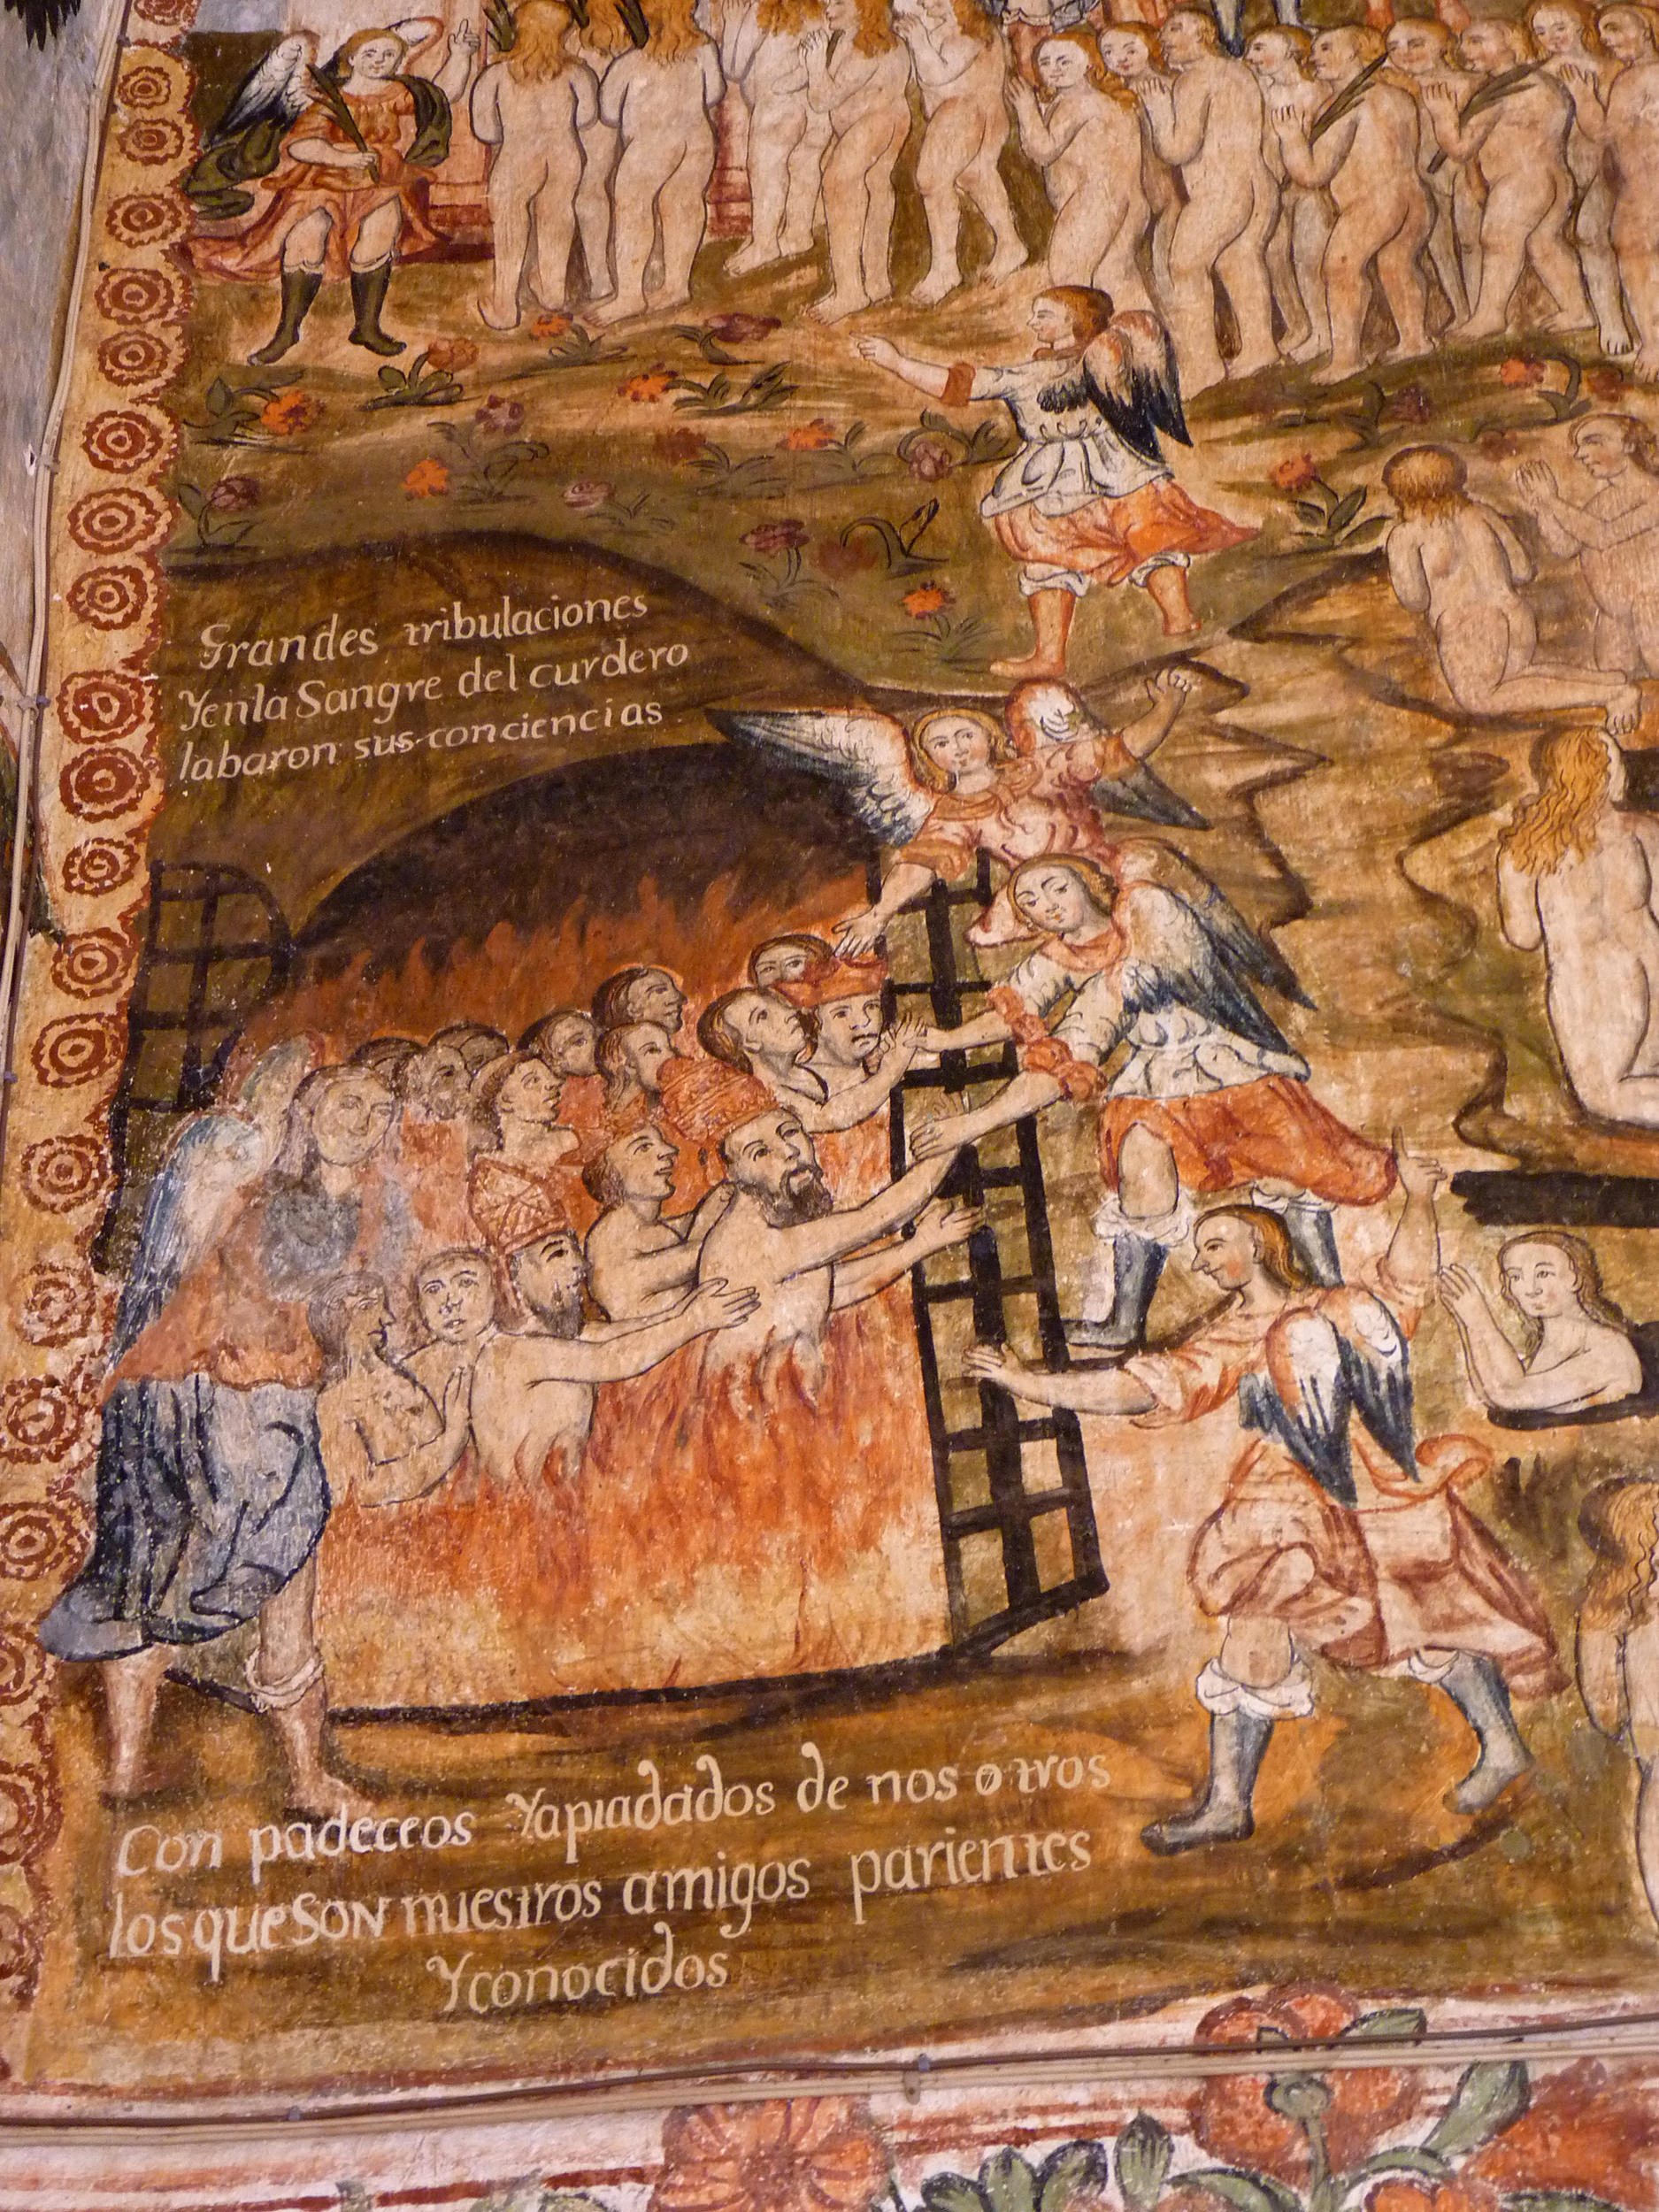 Fig. 34 Detail from Last Judgment by Tadeo Escalante, 1802. Church of Huaro, Quispicanchi Province. Photo by author. In this representation we see men undergoing purification from the flames of Purgatory. As we see often in this type of iconography, some of them men are shown wearing Bishop's mitres and Papal crowns.